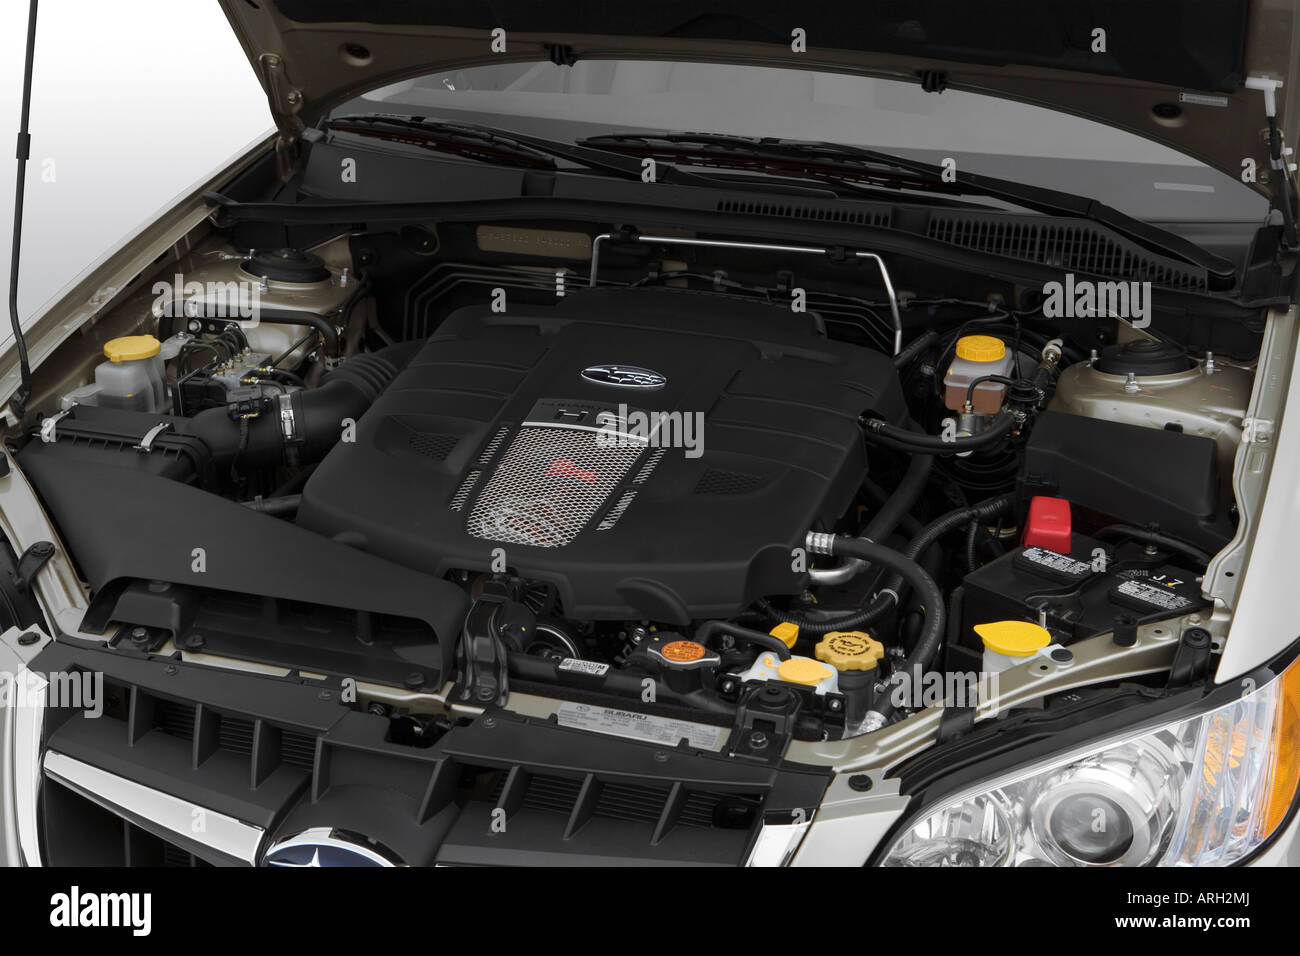 Subaru Ll Bean >> 2008 Subaru Outback 3.0 R L.L. Bean in Gold - Engine Stock Photo: 16054097 - Alamy